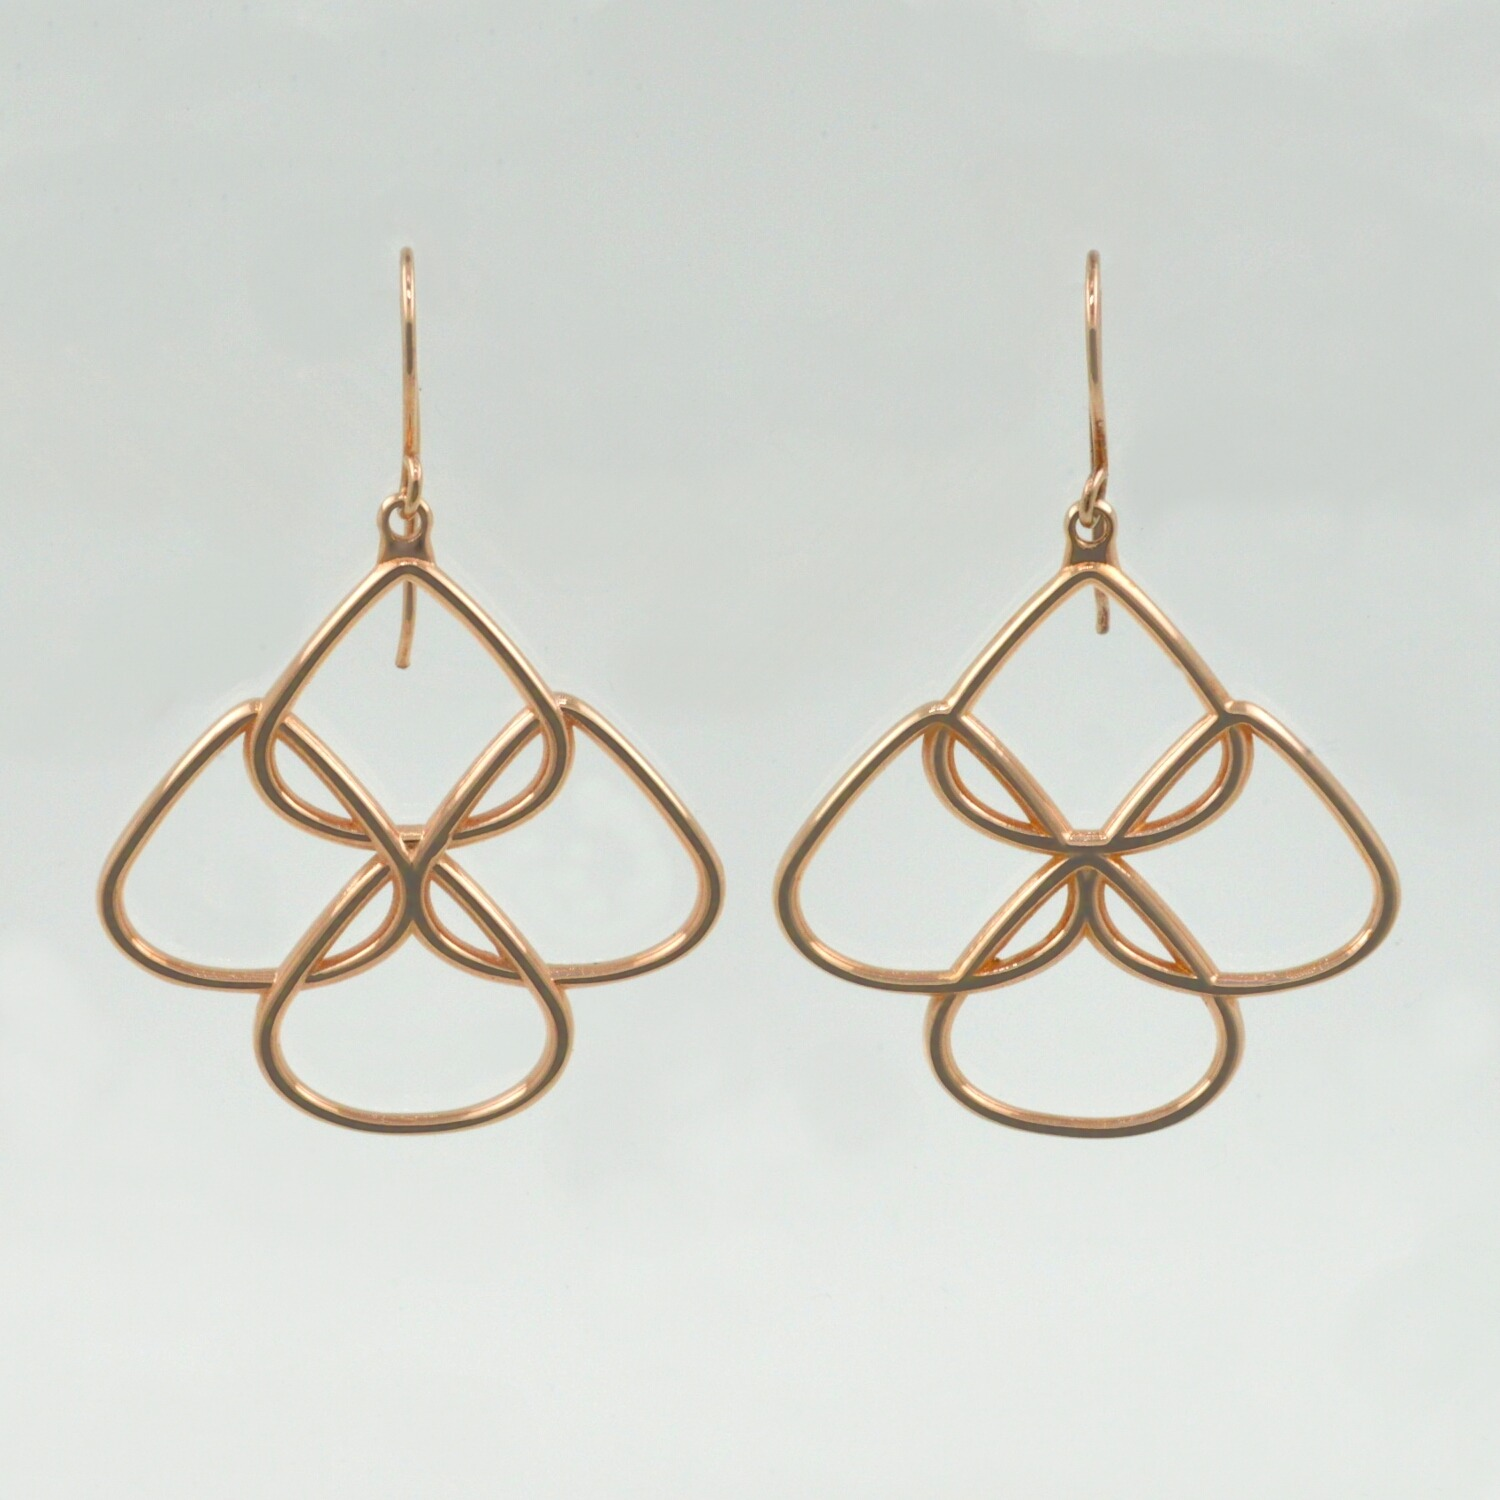 Rose gold chandelier earrings rionore jewellery gold plated chandelier earrings rose gold chandelier earrings arubaitofo Image collections